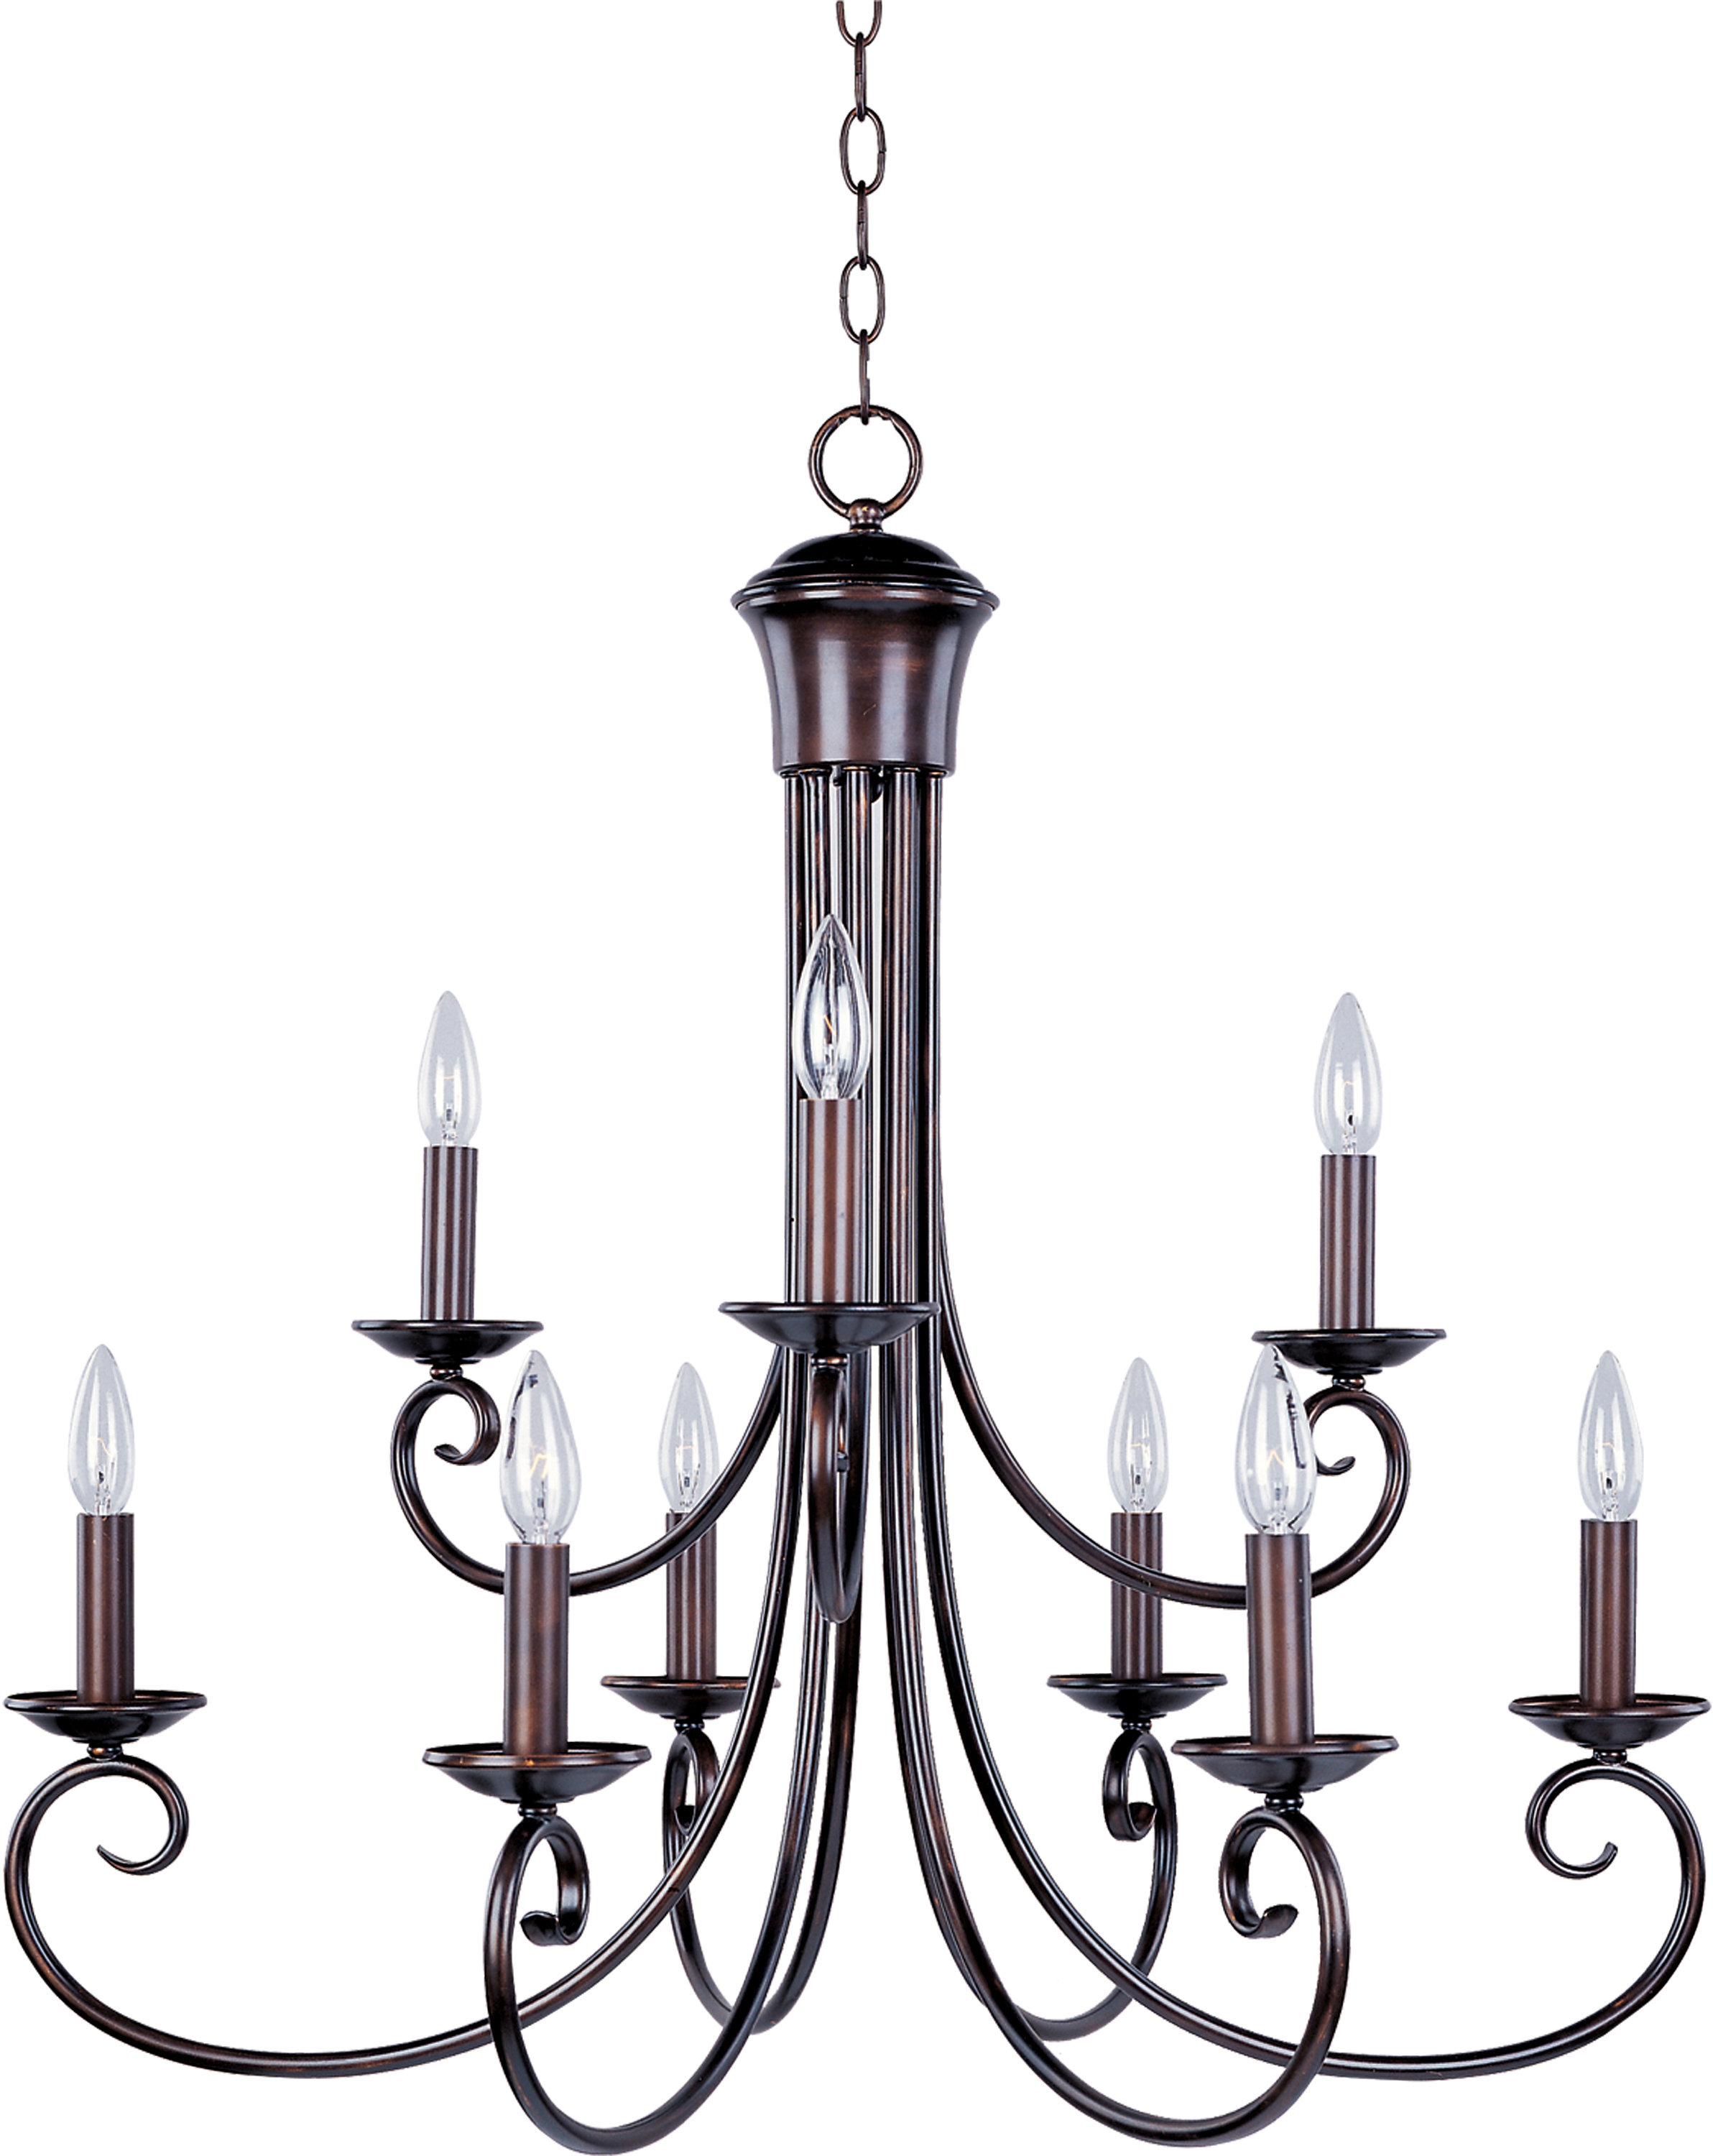 2020 Camilla 9 Light Candle Style Chandeliers With Regard To Charlton Home Kenedy 9 Light Candle Style Chandelier (View 1 of 20)